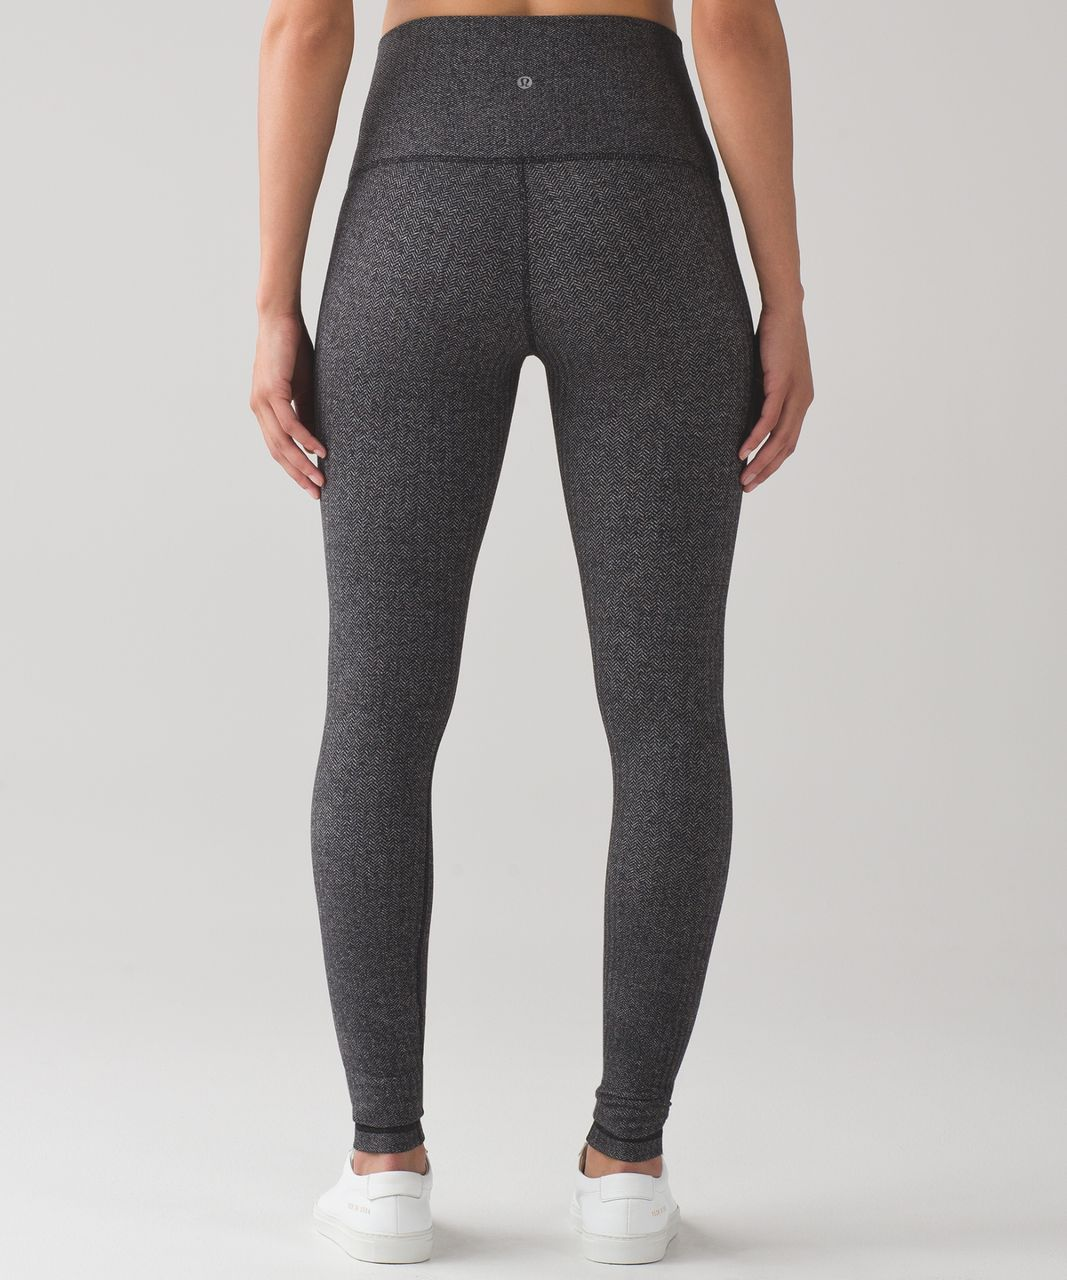 f63421512 Lululemon Wunder Under Pant (Hi-Rise) - Heathered Herringbone ...